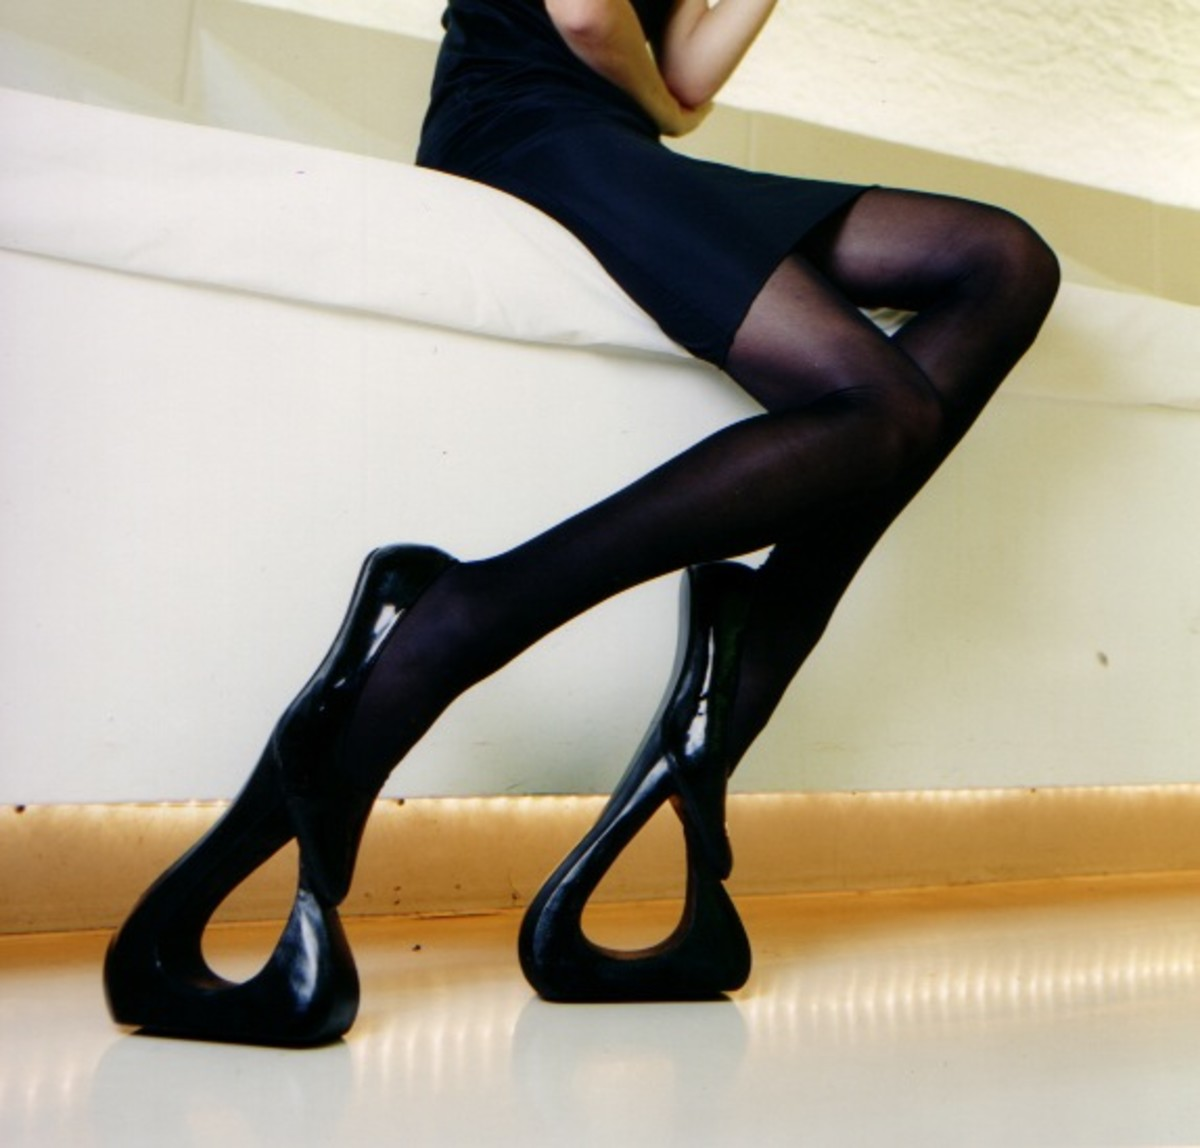 Make sure you weigh only 15kg when wearing these, otherwise you're not going to get very far.